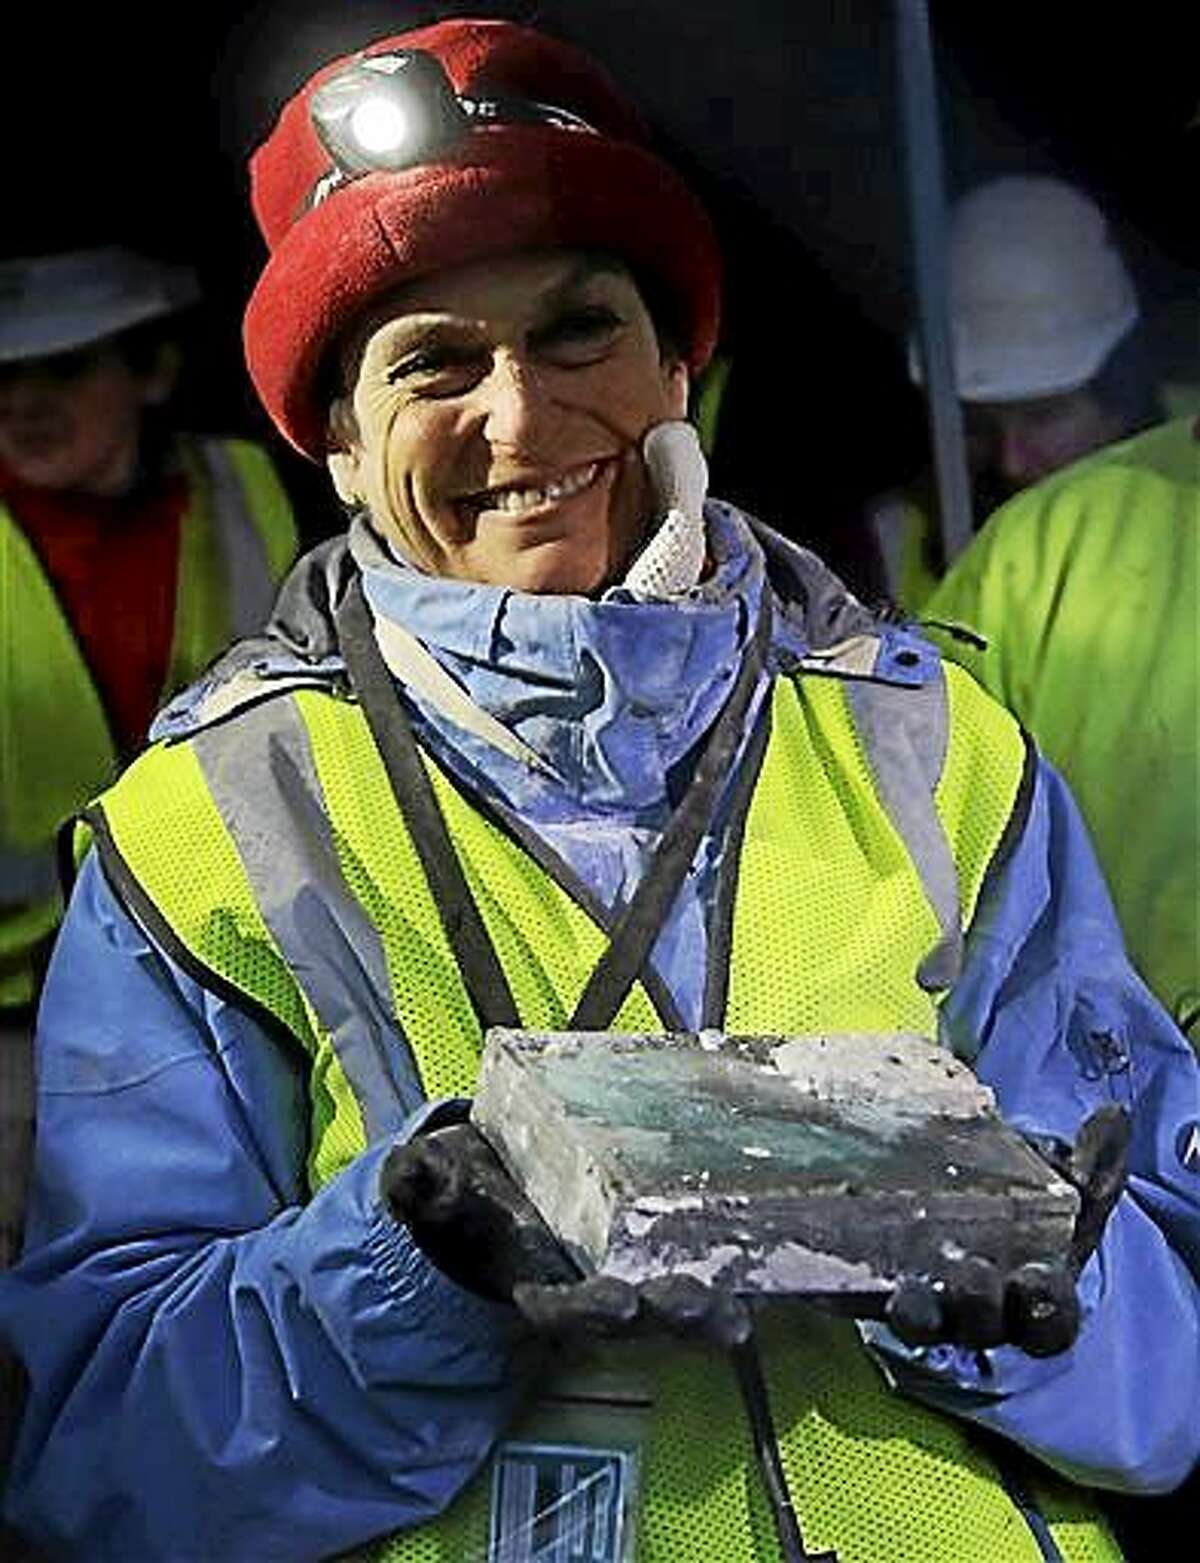 Pamela Hatchfield, a conservator at the Boston's Museum of Fine Arts, holds a time capsule she removed Dec. 11 from the cornerstone of the Statehouse in Boston.